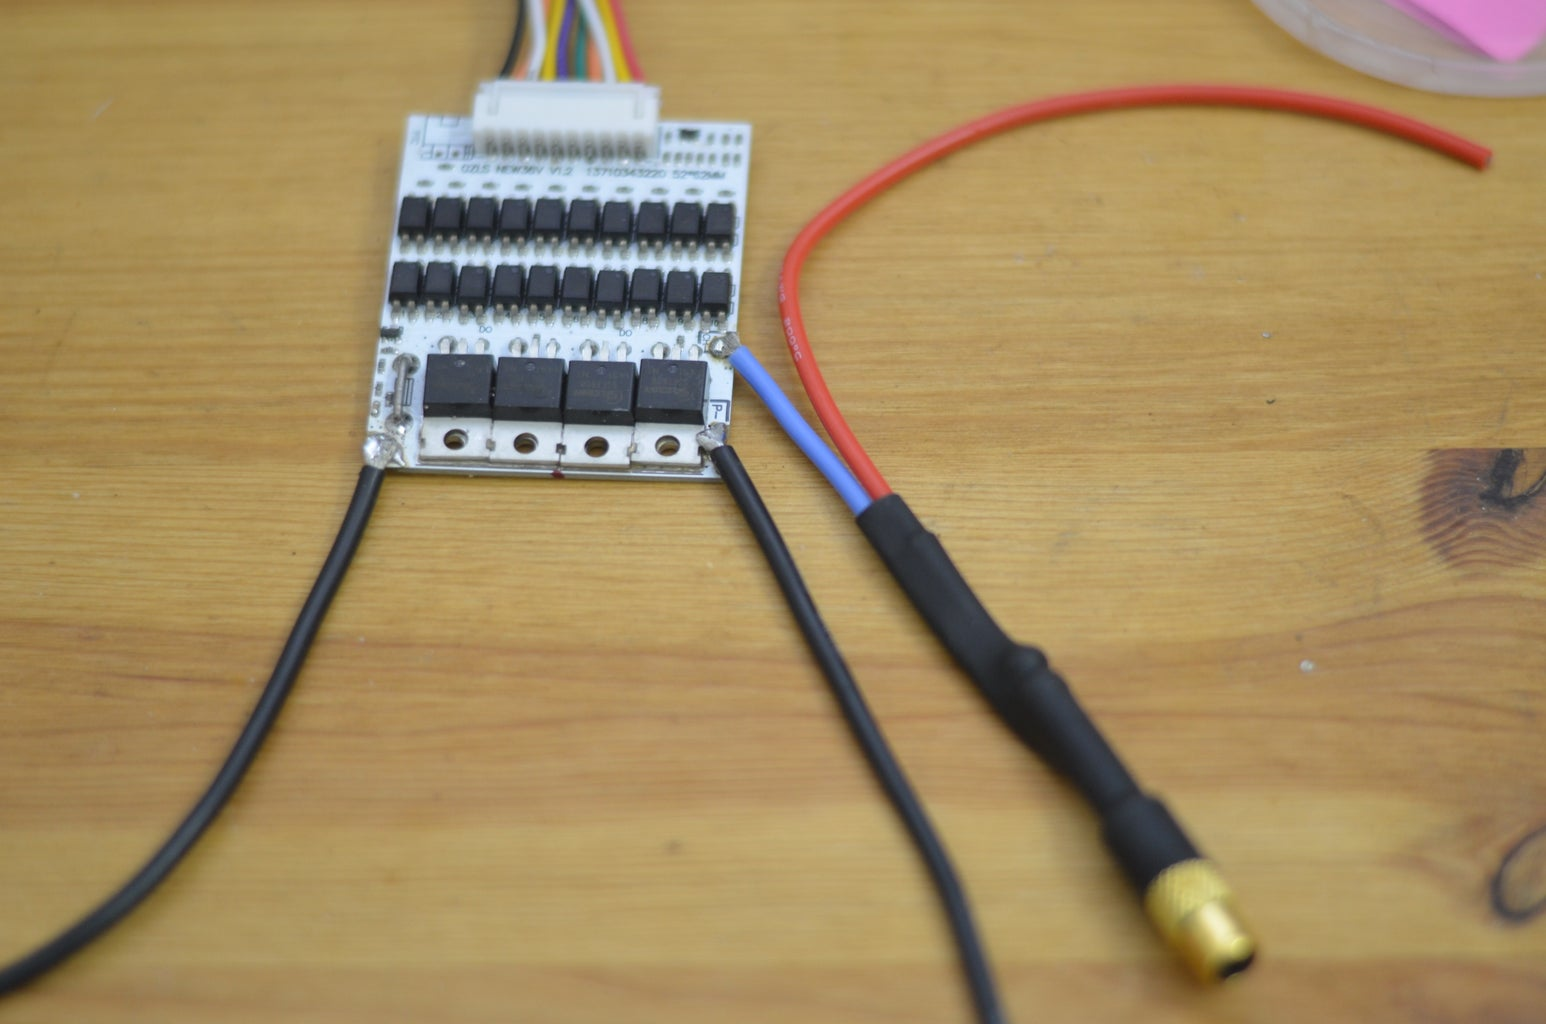 Connect Wires to the BMS